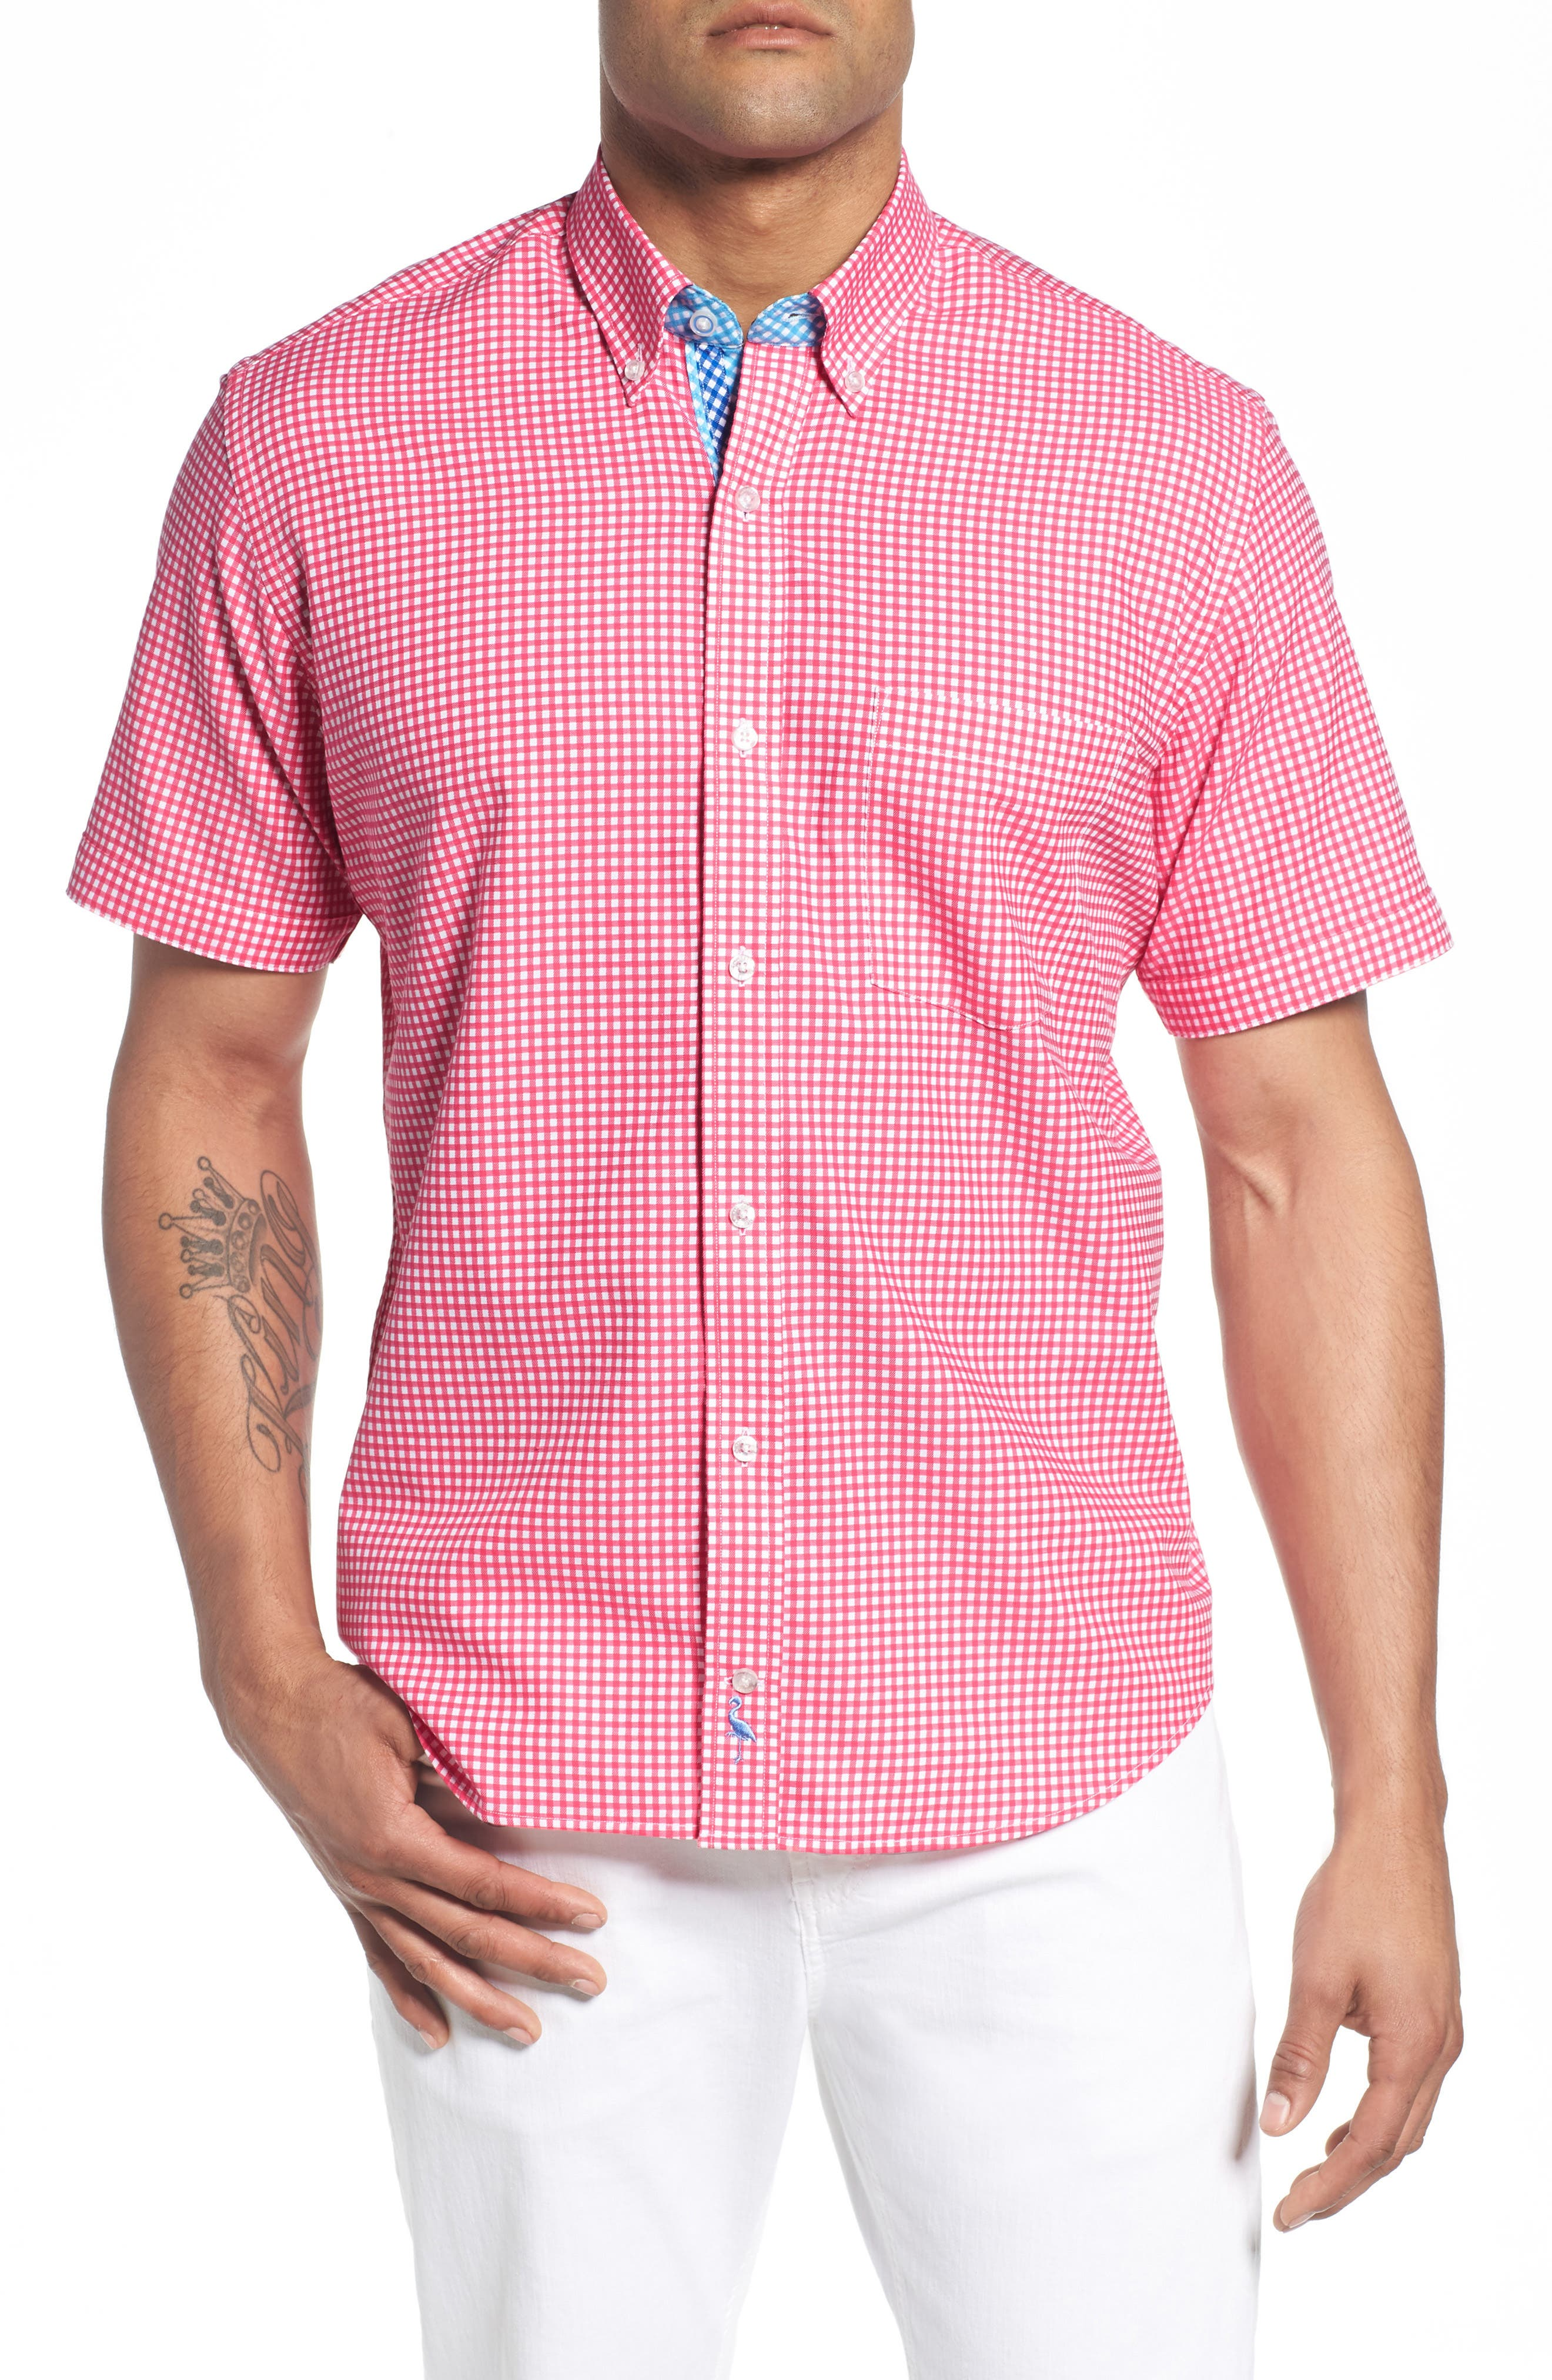 Aden Regular Fit Sport Shirt,                             Main thumbnail 1, color,                             950